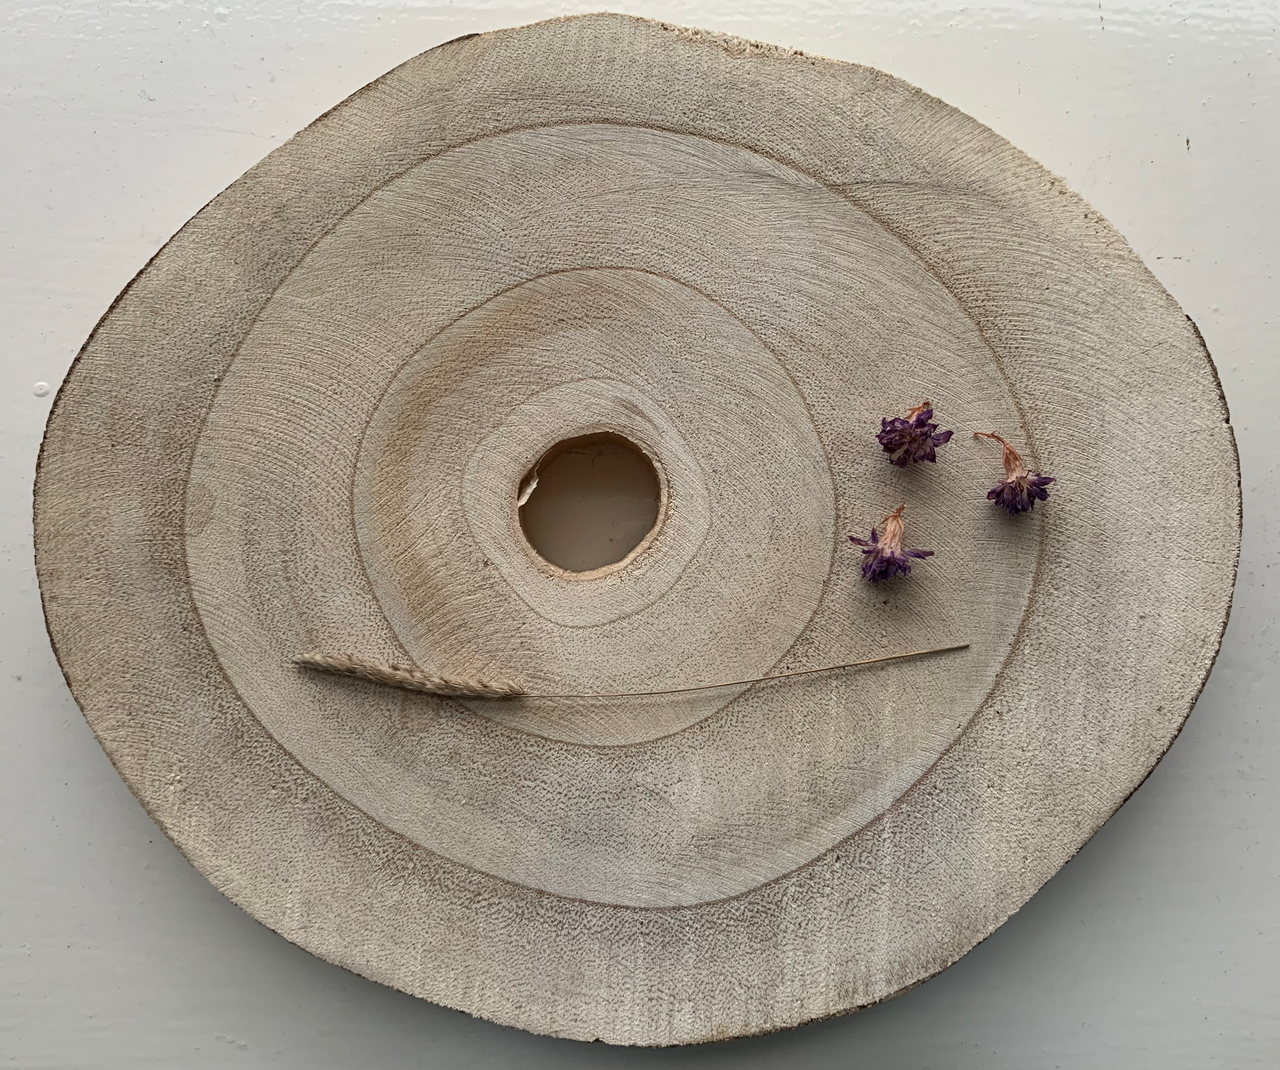 slice of wood showing tree rings with dried flowers and piece of dried grass with a seed head sitting atop it